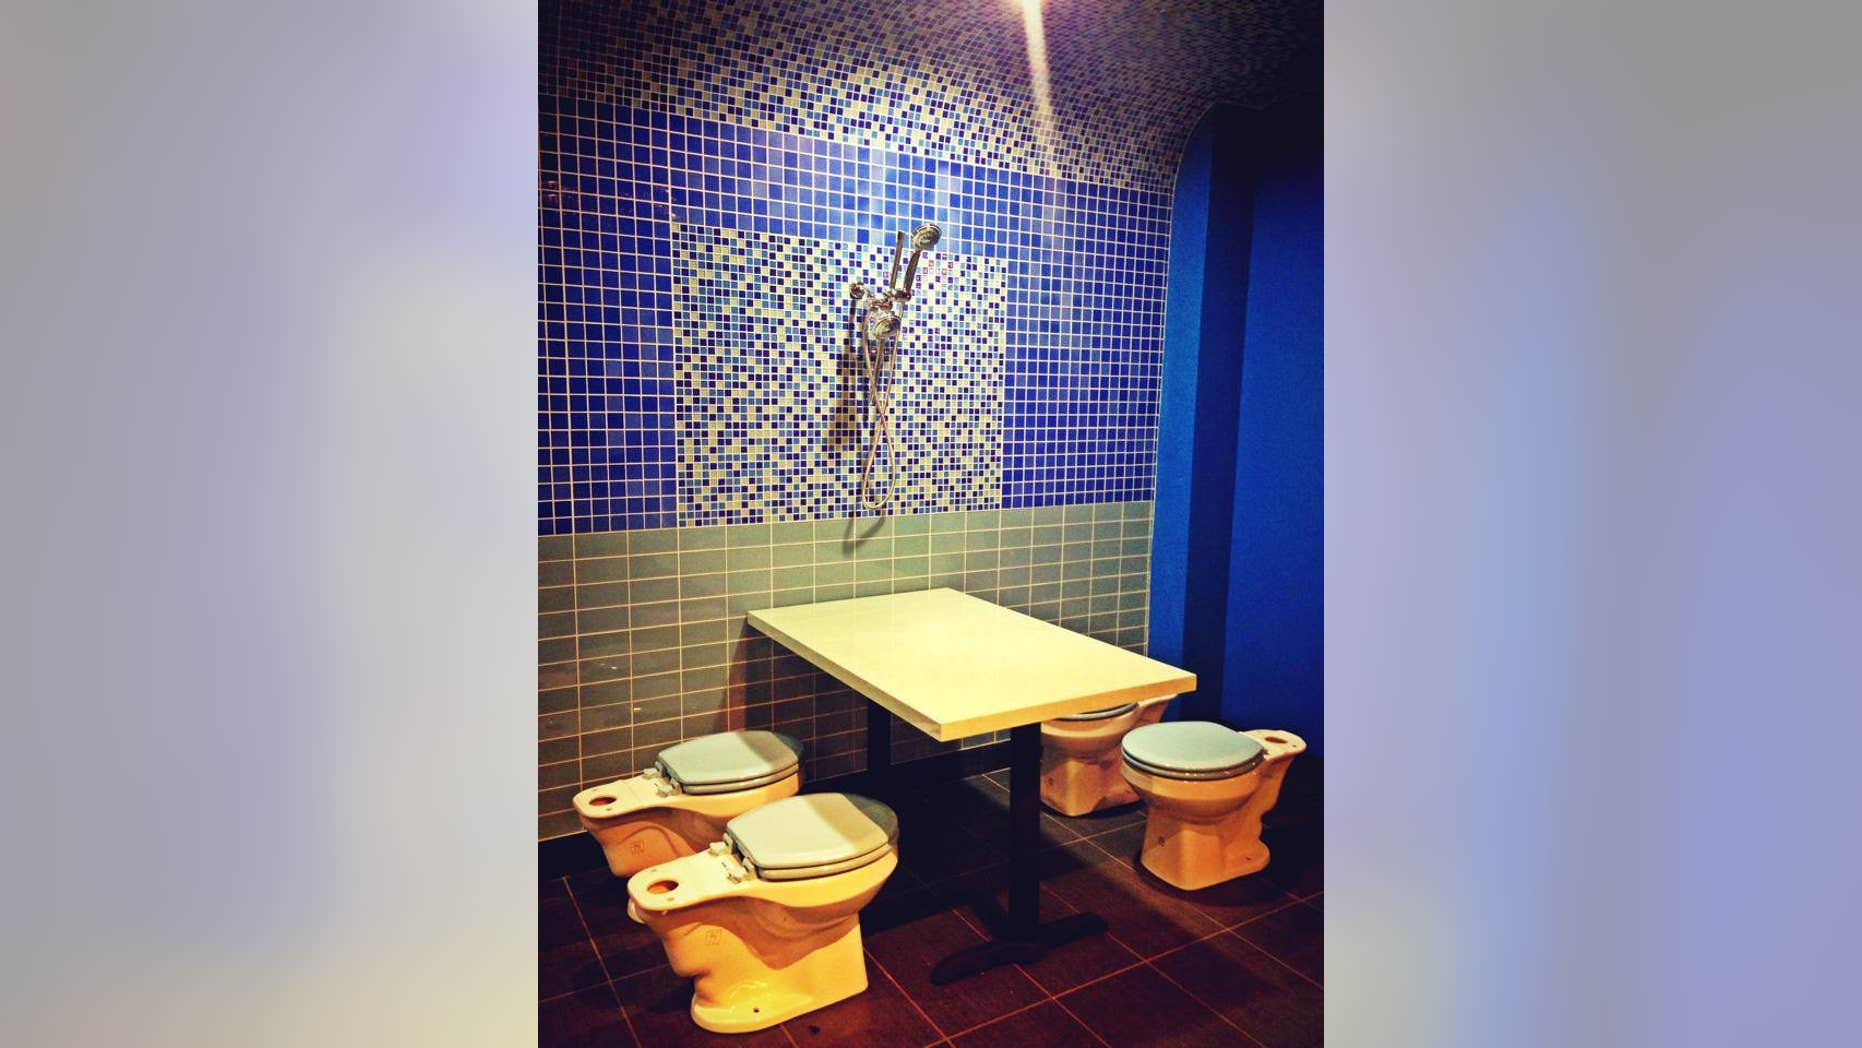 Diners can no longer eat from toilets at this bathroom-themed eatery.